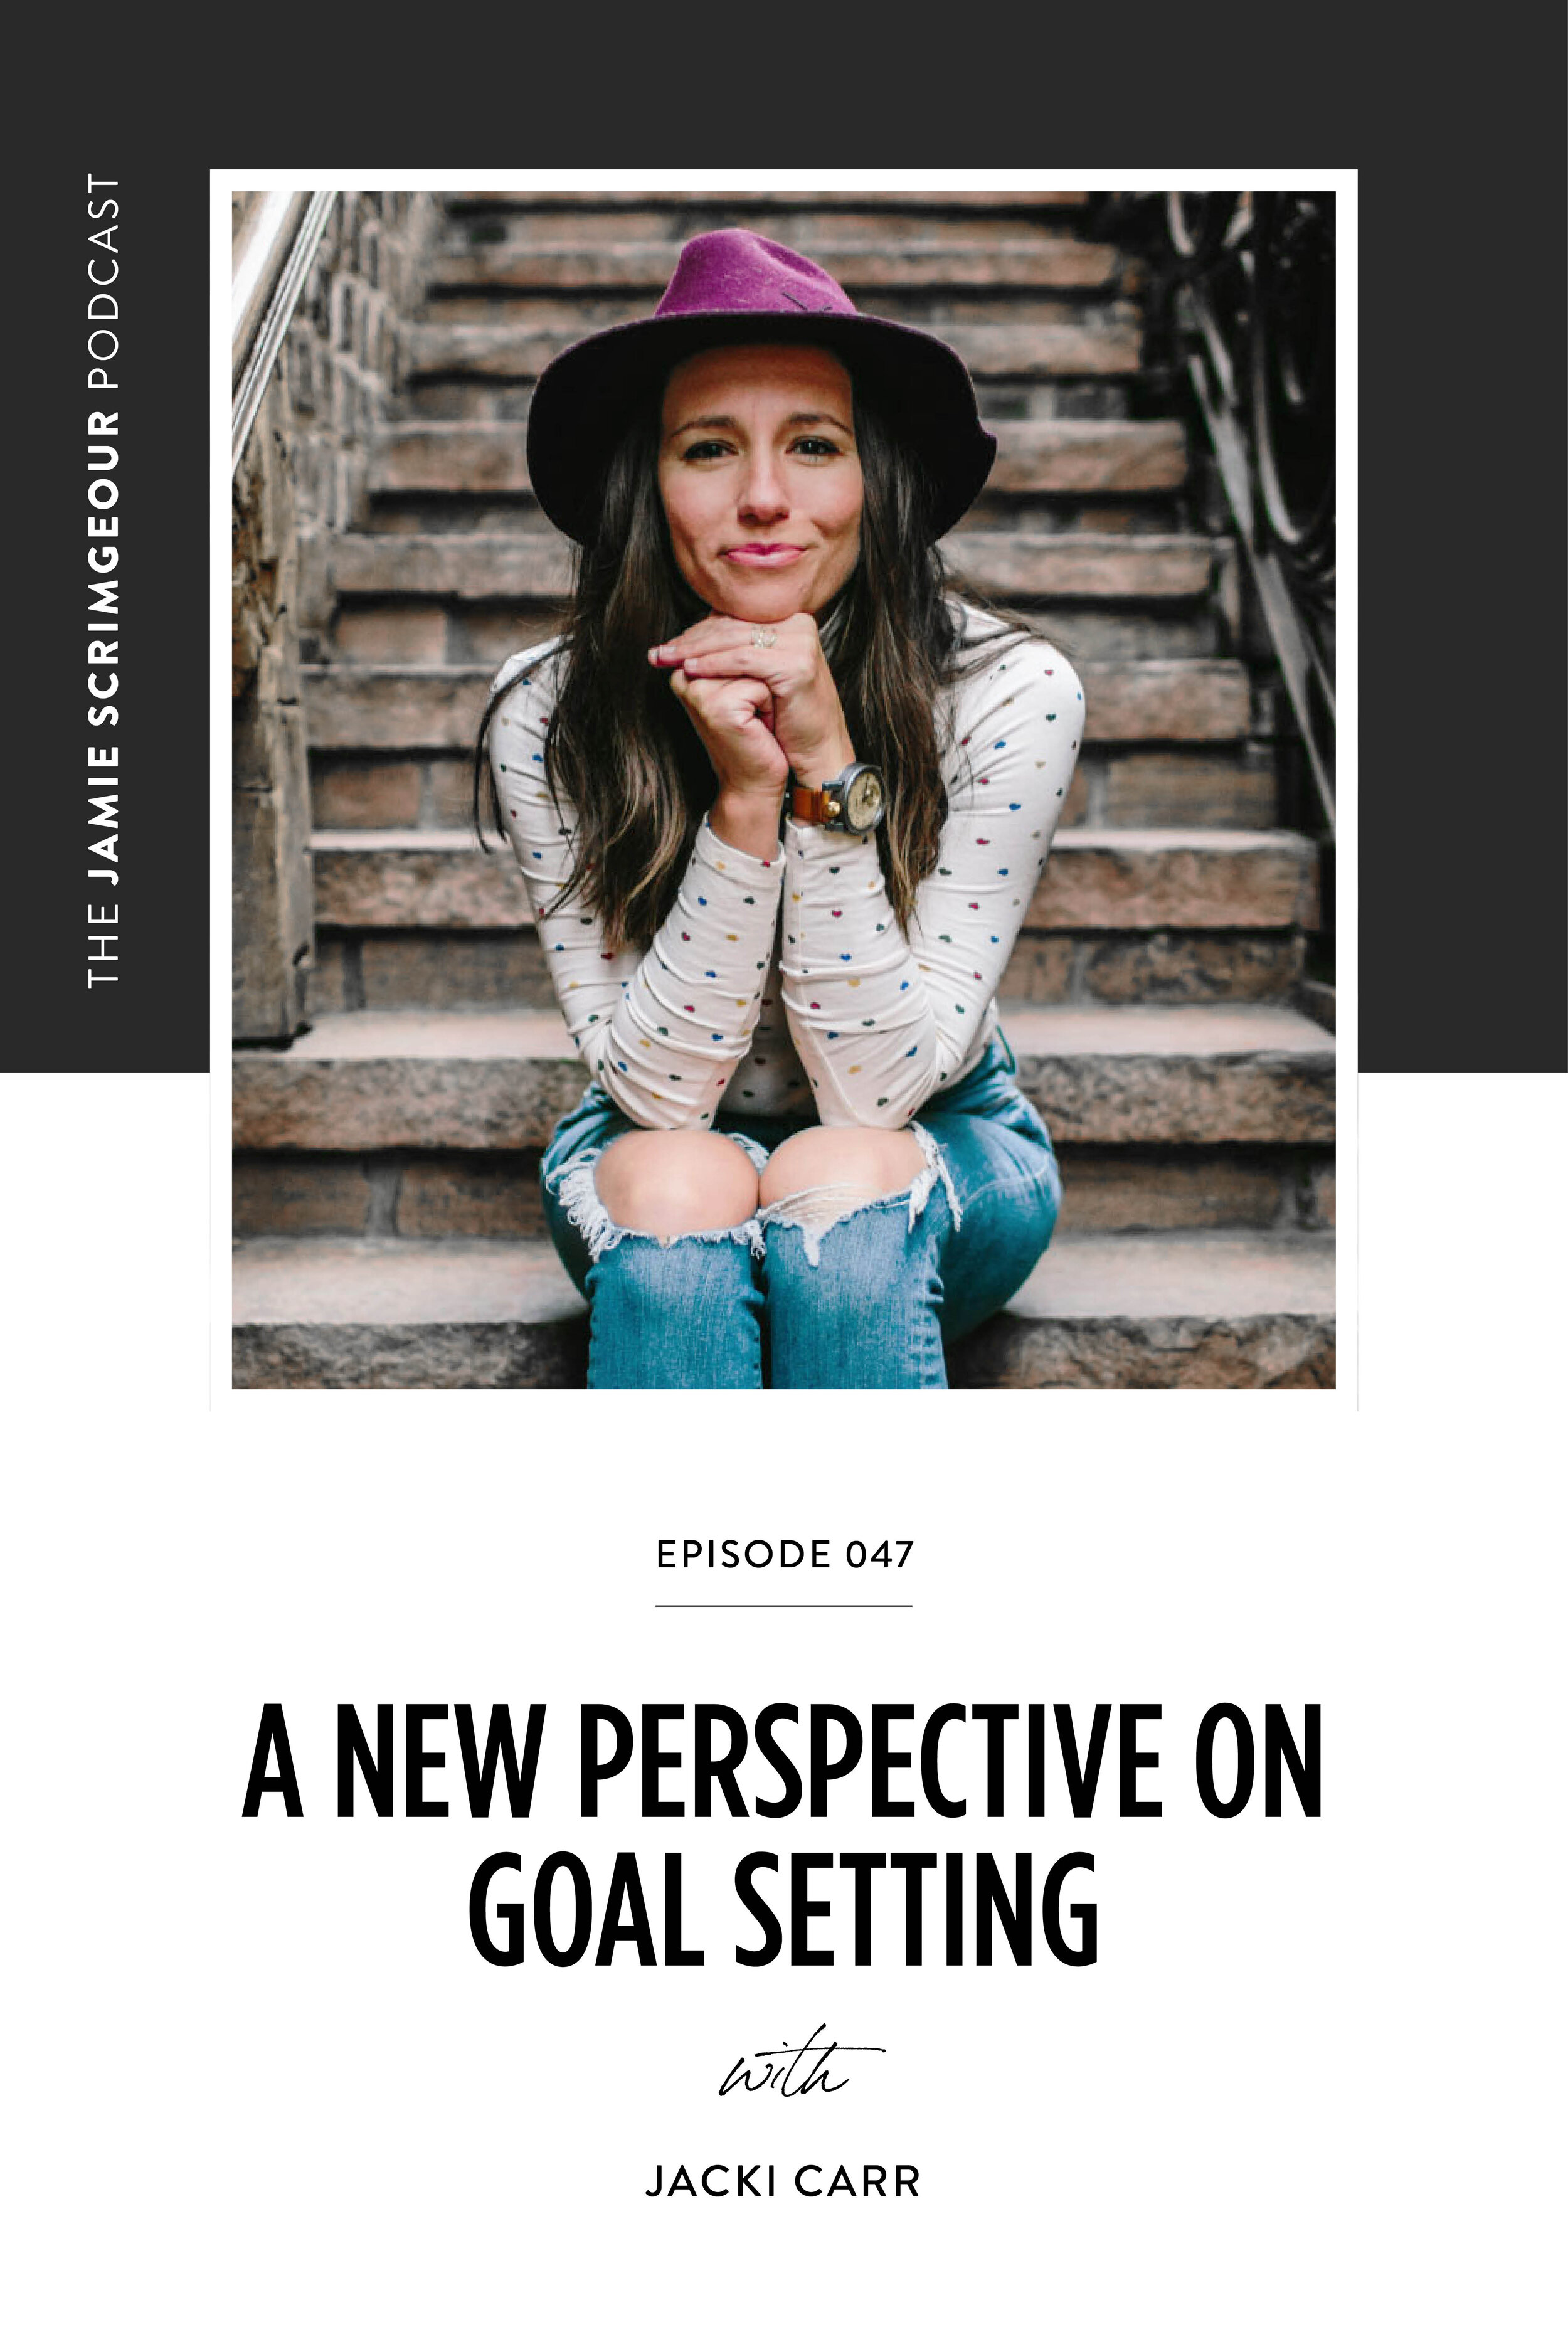 A New Perspective On Goal Setting With Jacki Carr  | The Jamie Scrimgeour Podcast Episode 47